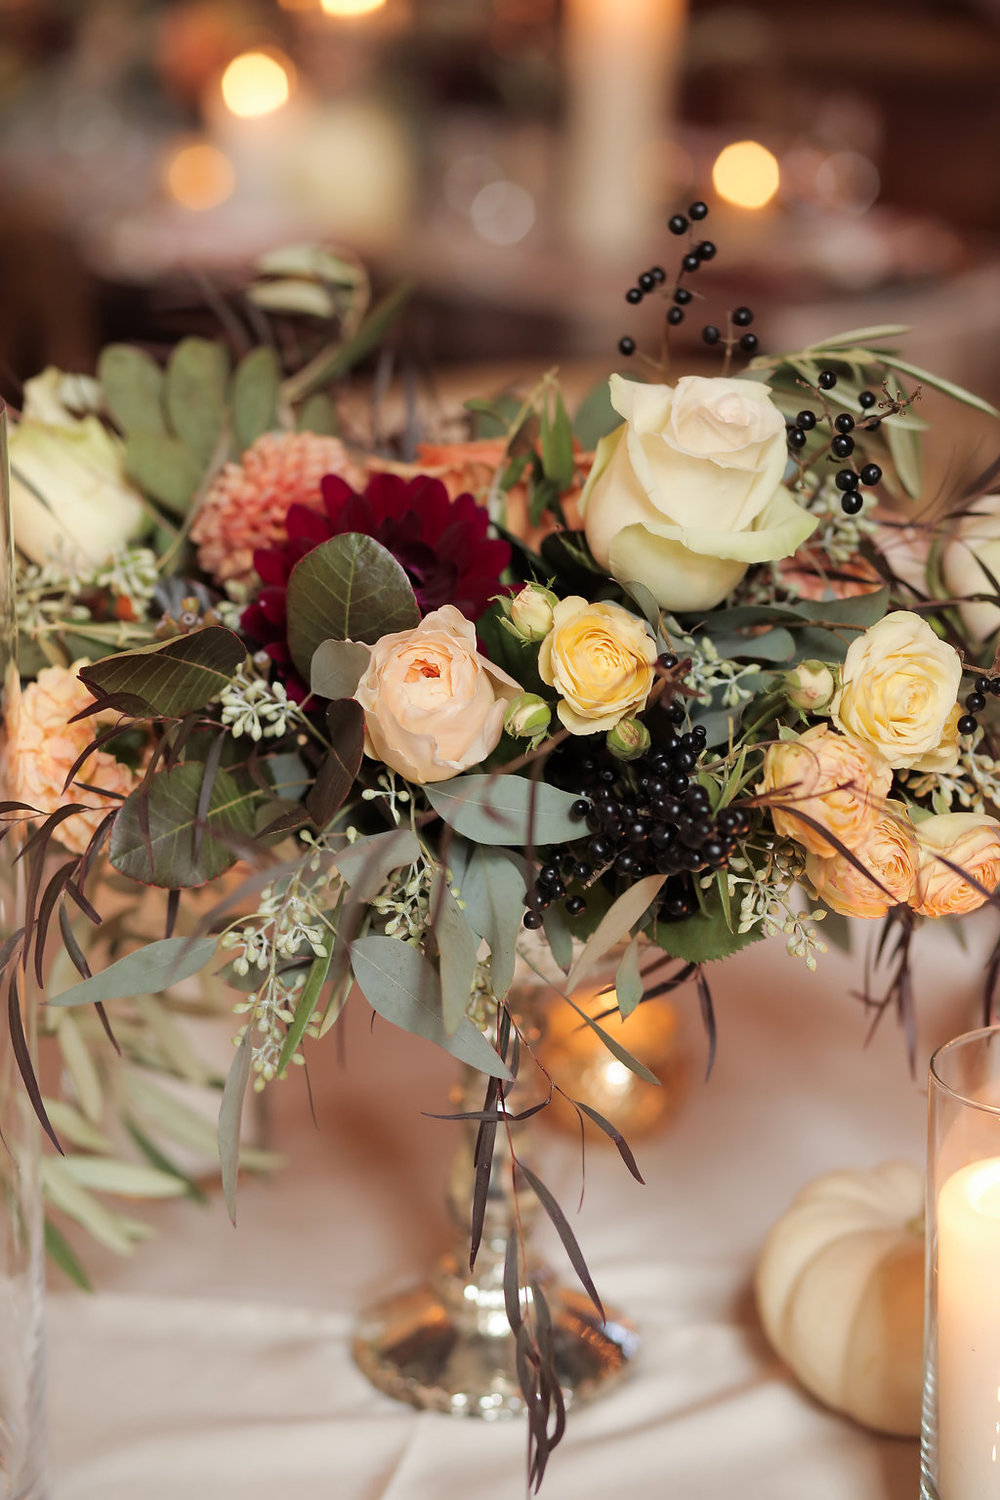 Sundance Resort Wedding Photographed by Pepper Nix | Michelle Leo Events | Fall Inspired Utah Wedding | Utah Wedding Design and Planning